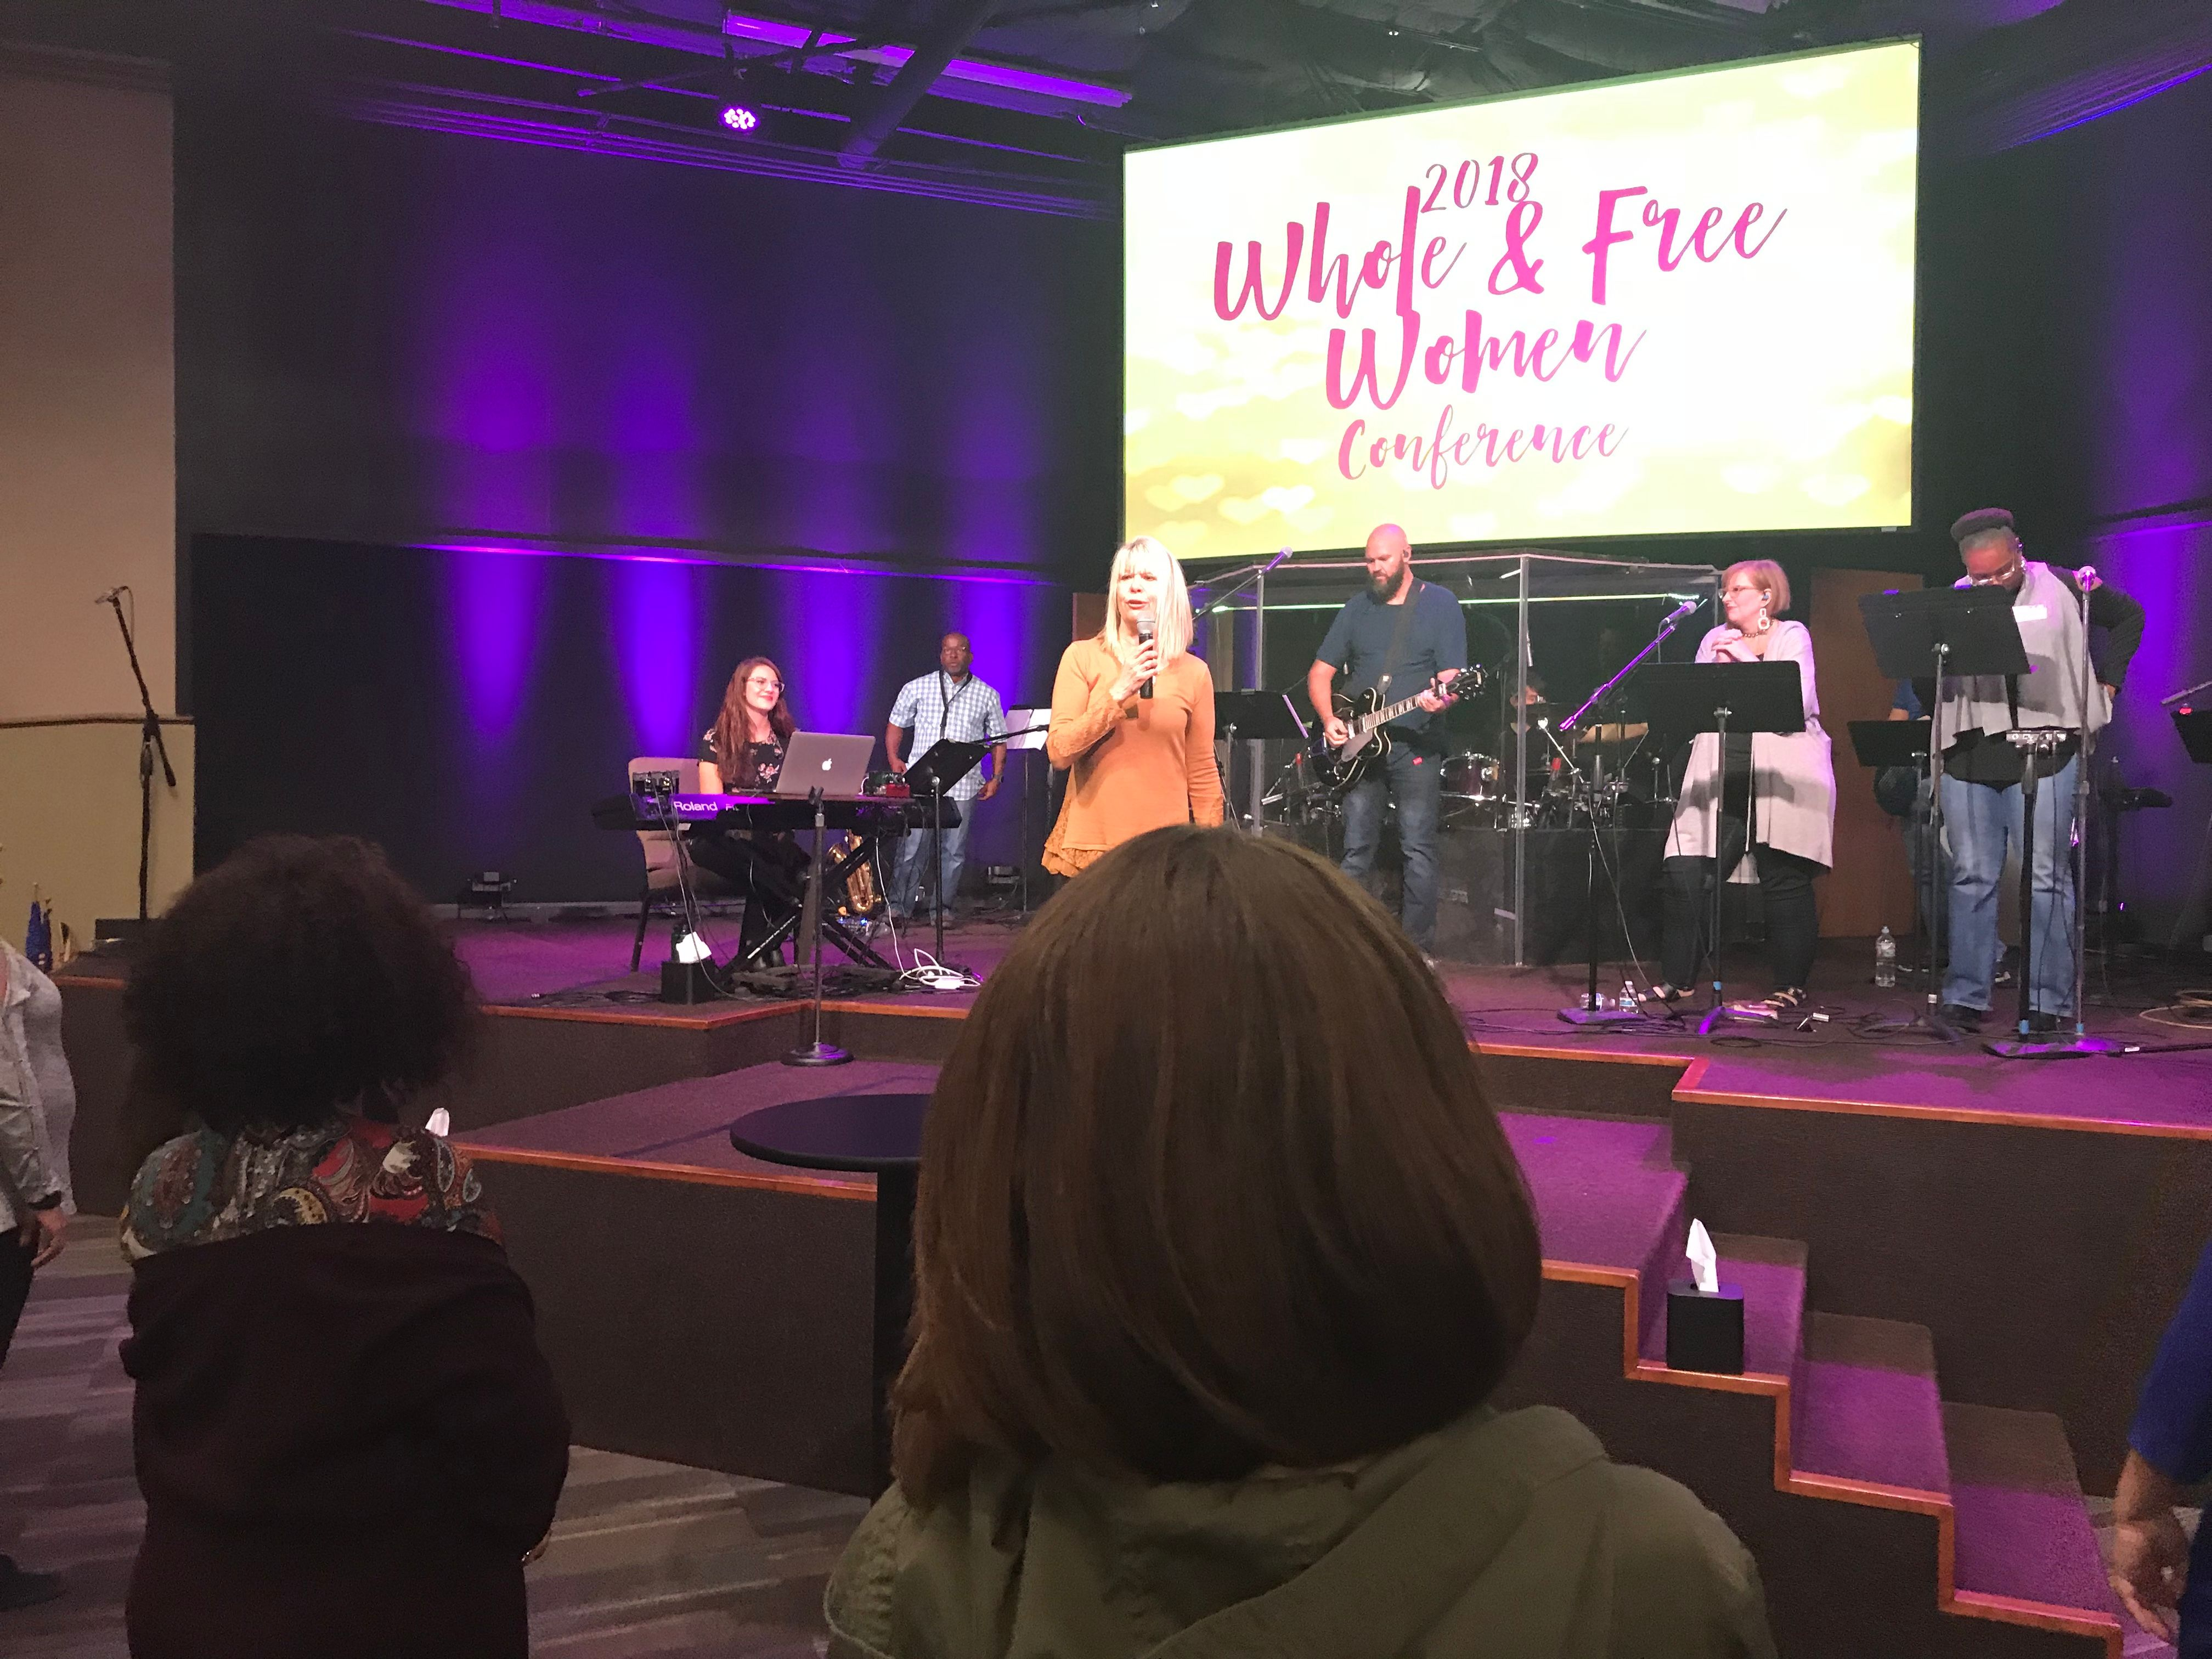 Whole and Free Women's Ministry